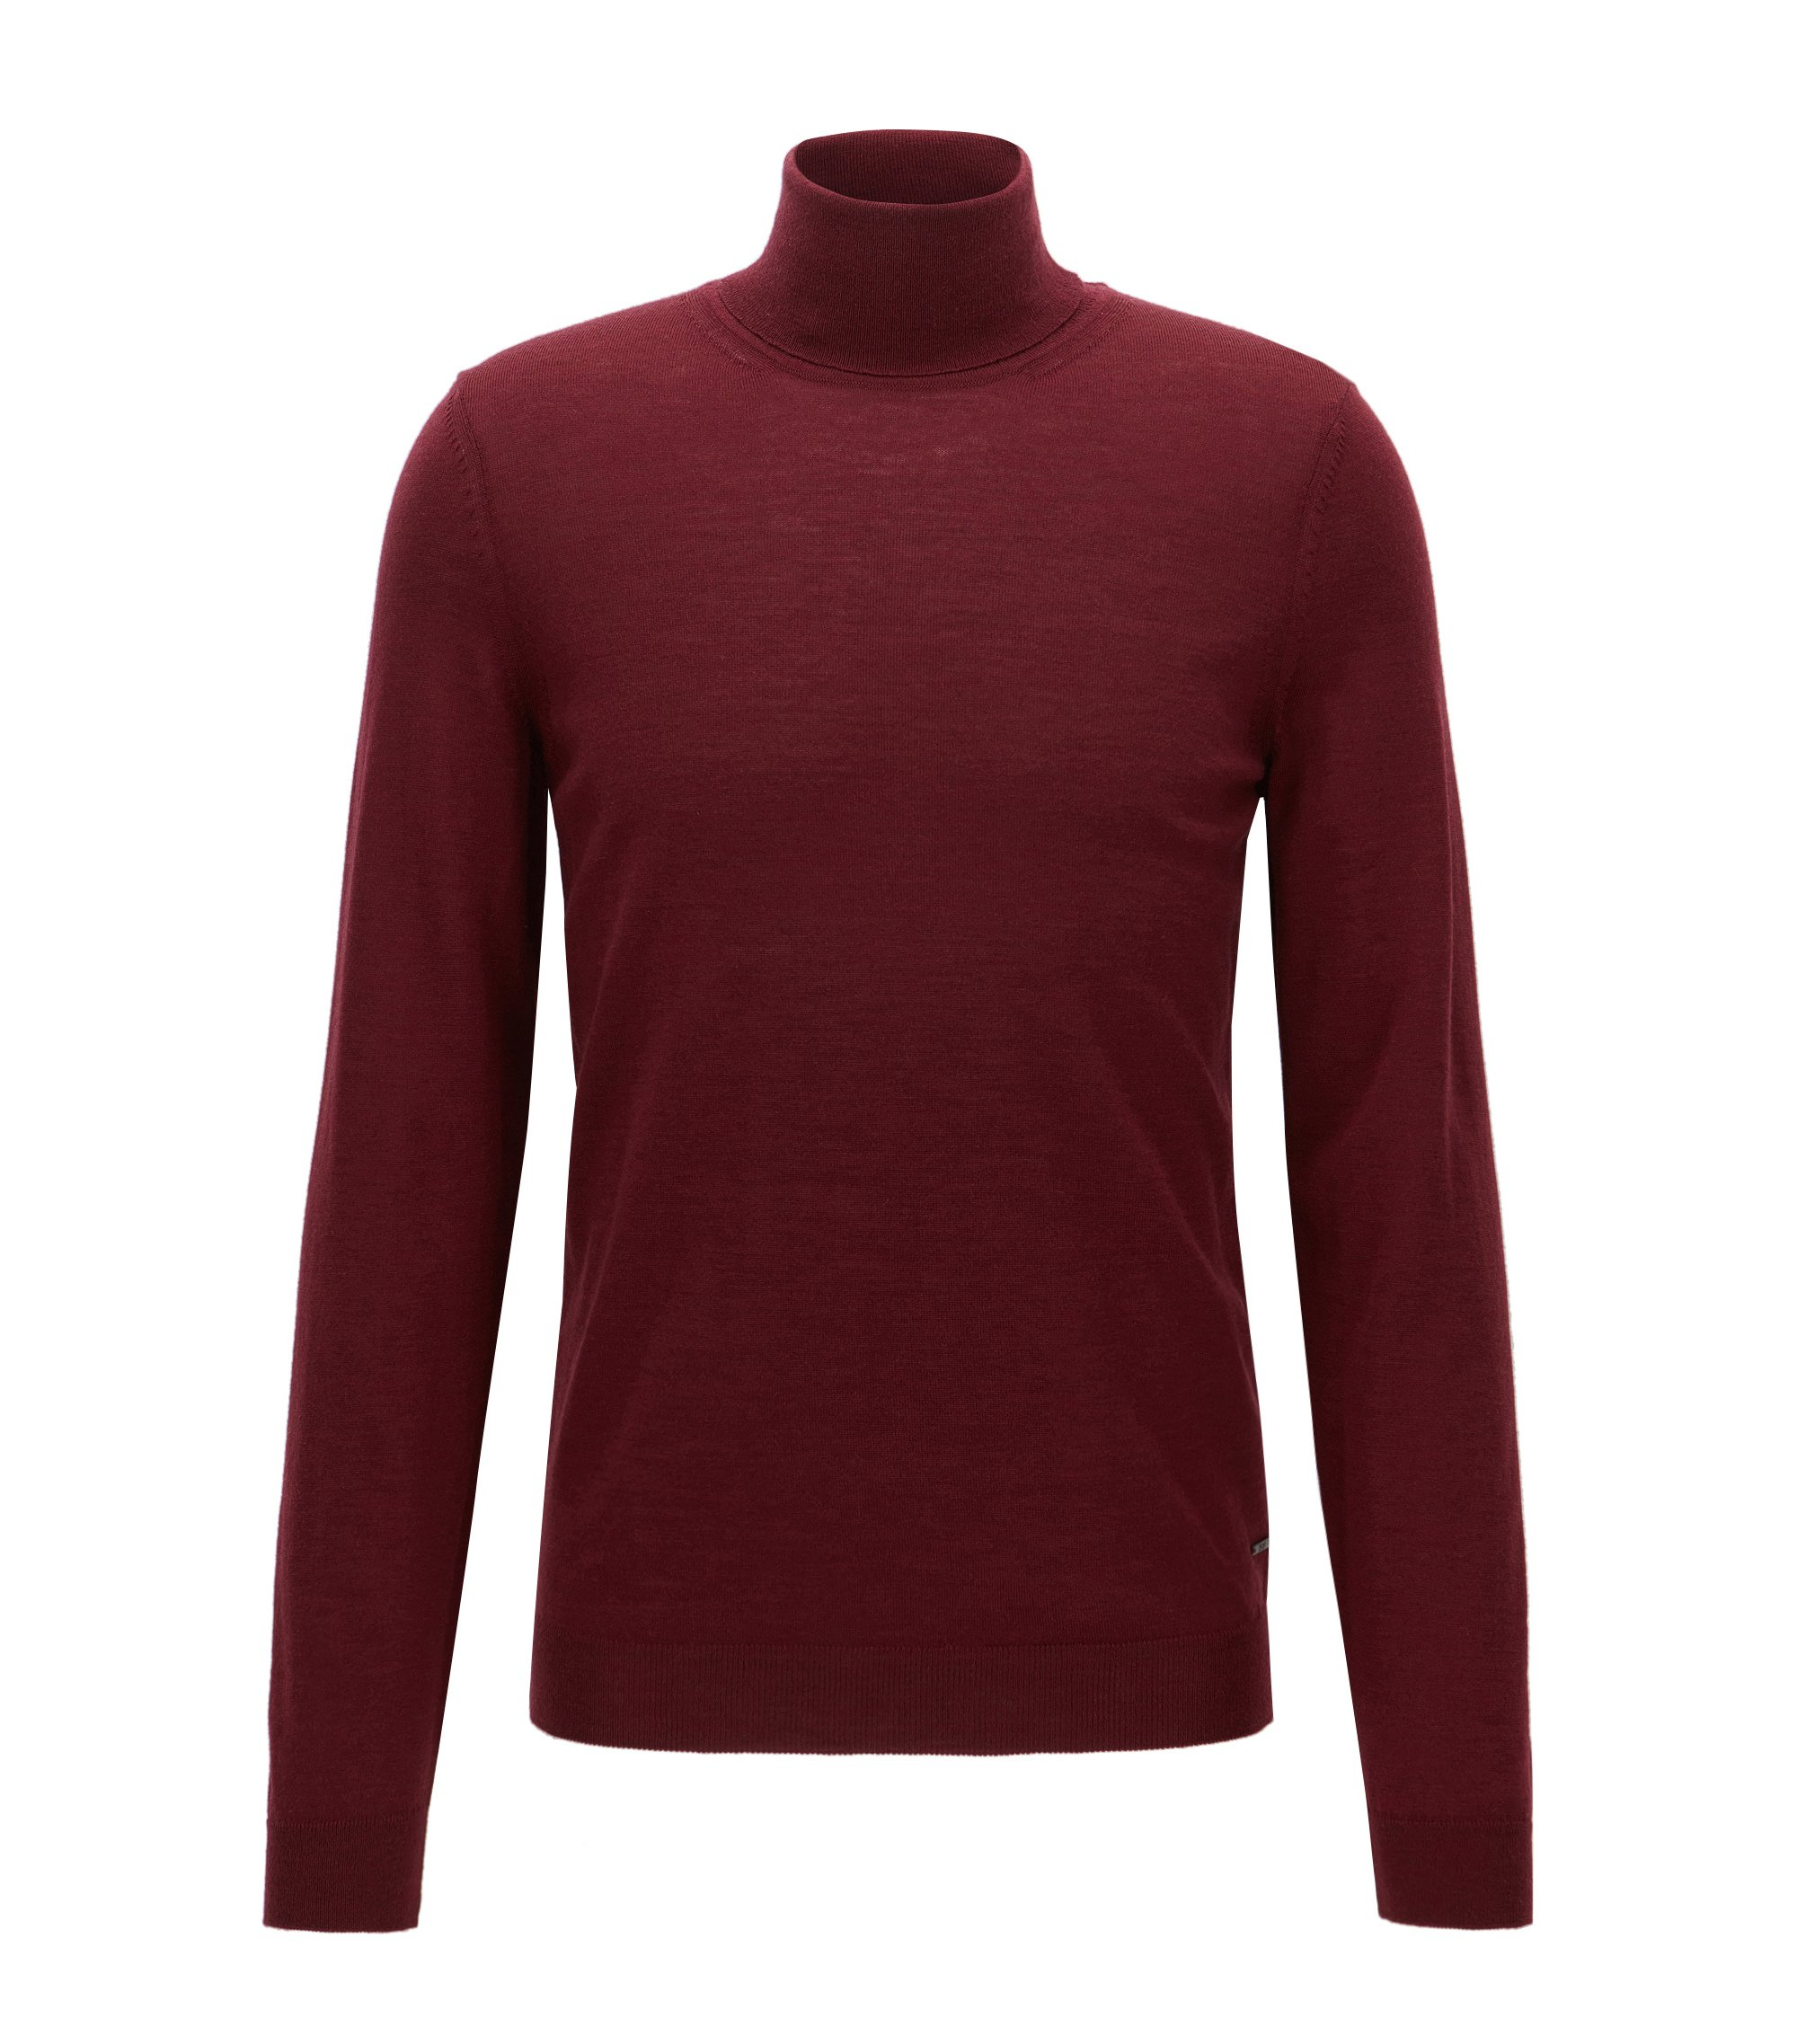 Merino Wool Turtleneck Sweater | Musso N, Dark Red